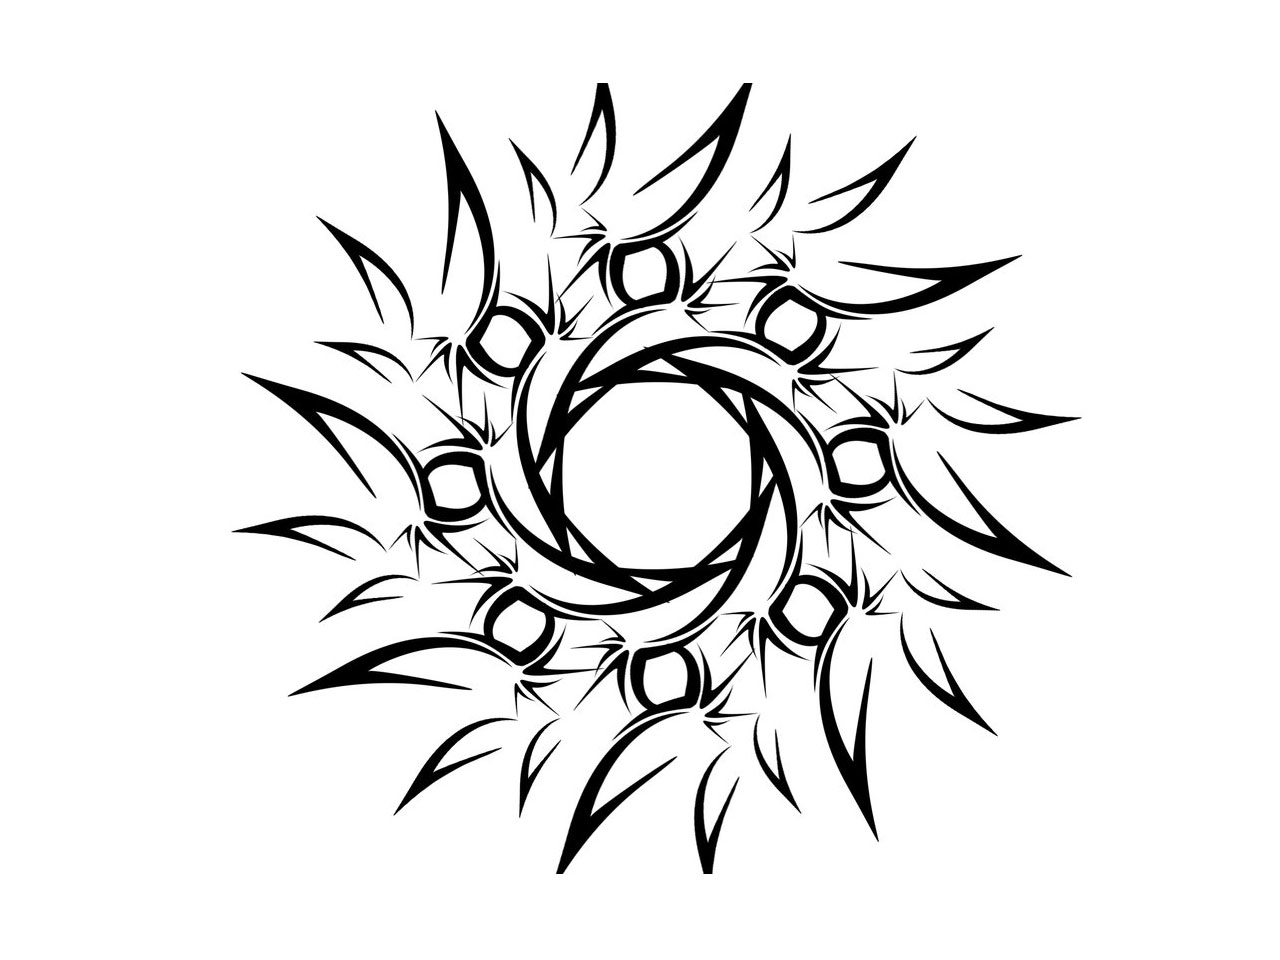 Sun Simple Drawing Sun Number 30186 · Simple